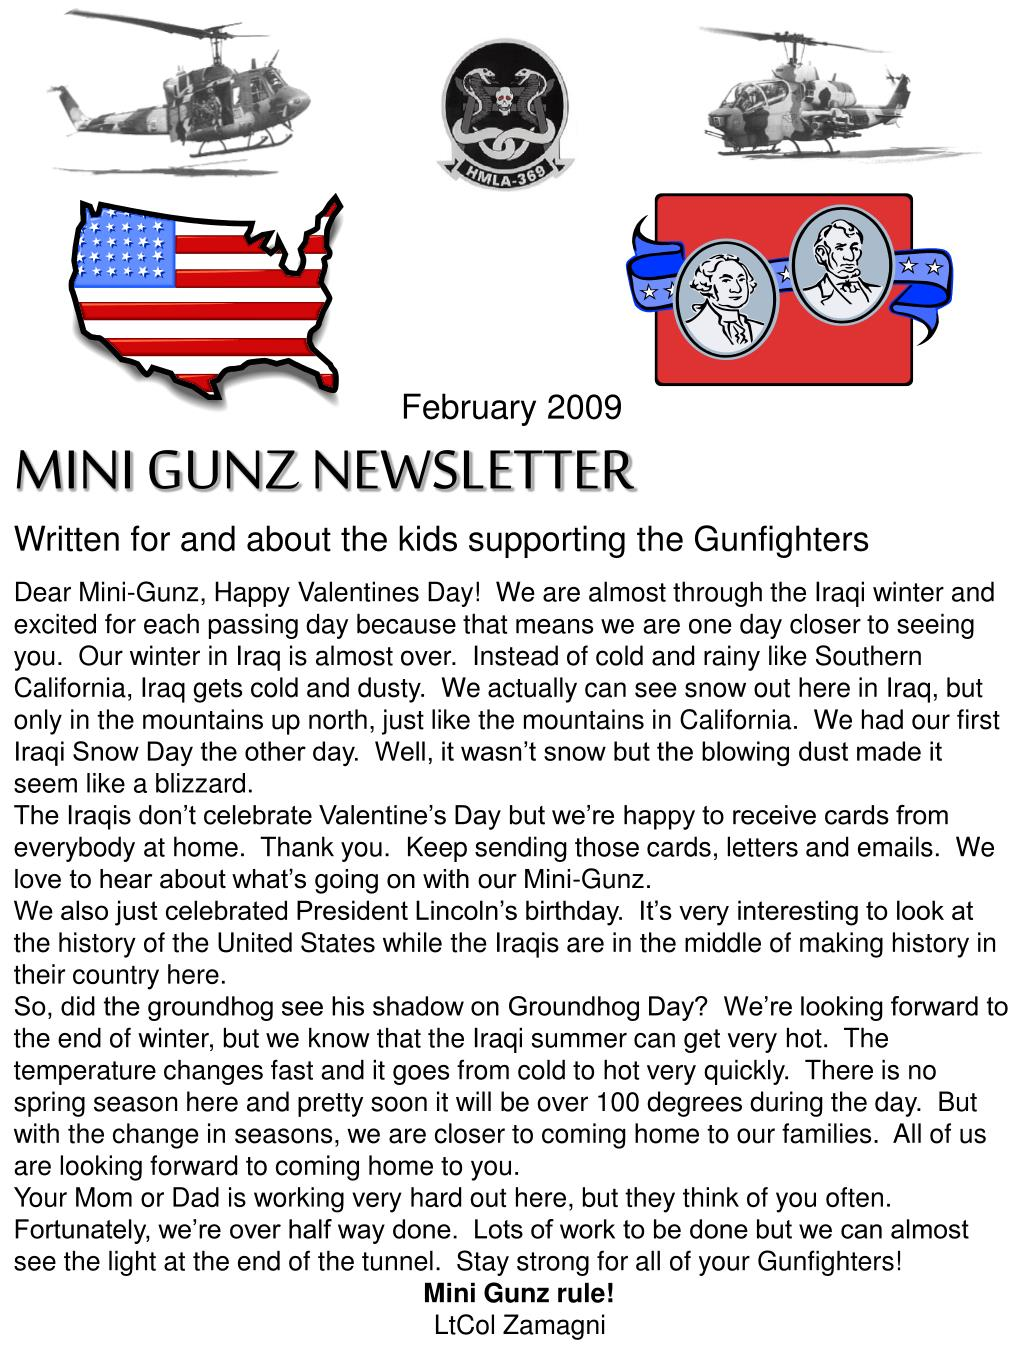 Dear Mini-Gunz, Happy Valentines Day!  We are almost through the Iraqi winter and excited for each passing day because that means we are one day closer to seeing you.  Our winter in Iraq is almost over.  Instead of cold and rainy like Southern California, Iraq gets cold and dusty.  We actually can see snow out here in Iraq, but only in the mountains up north, just like the mountains in California.  We had our first Iraqi Snow Day the other day.  Well, it wasn't snow but the blowing dust made it seem like a blizzard.